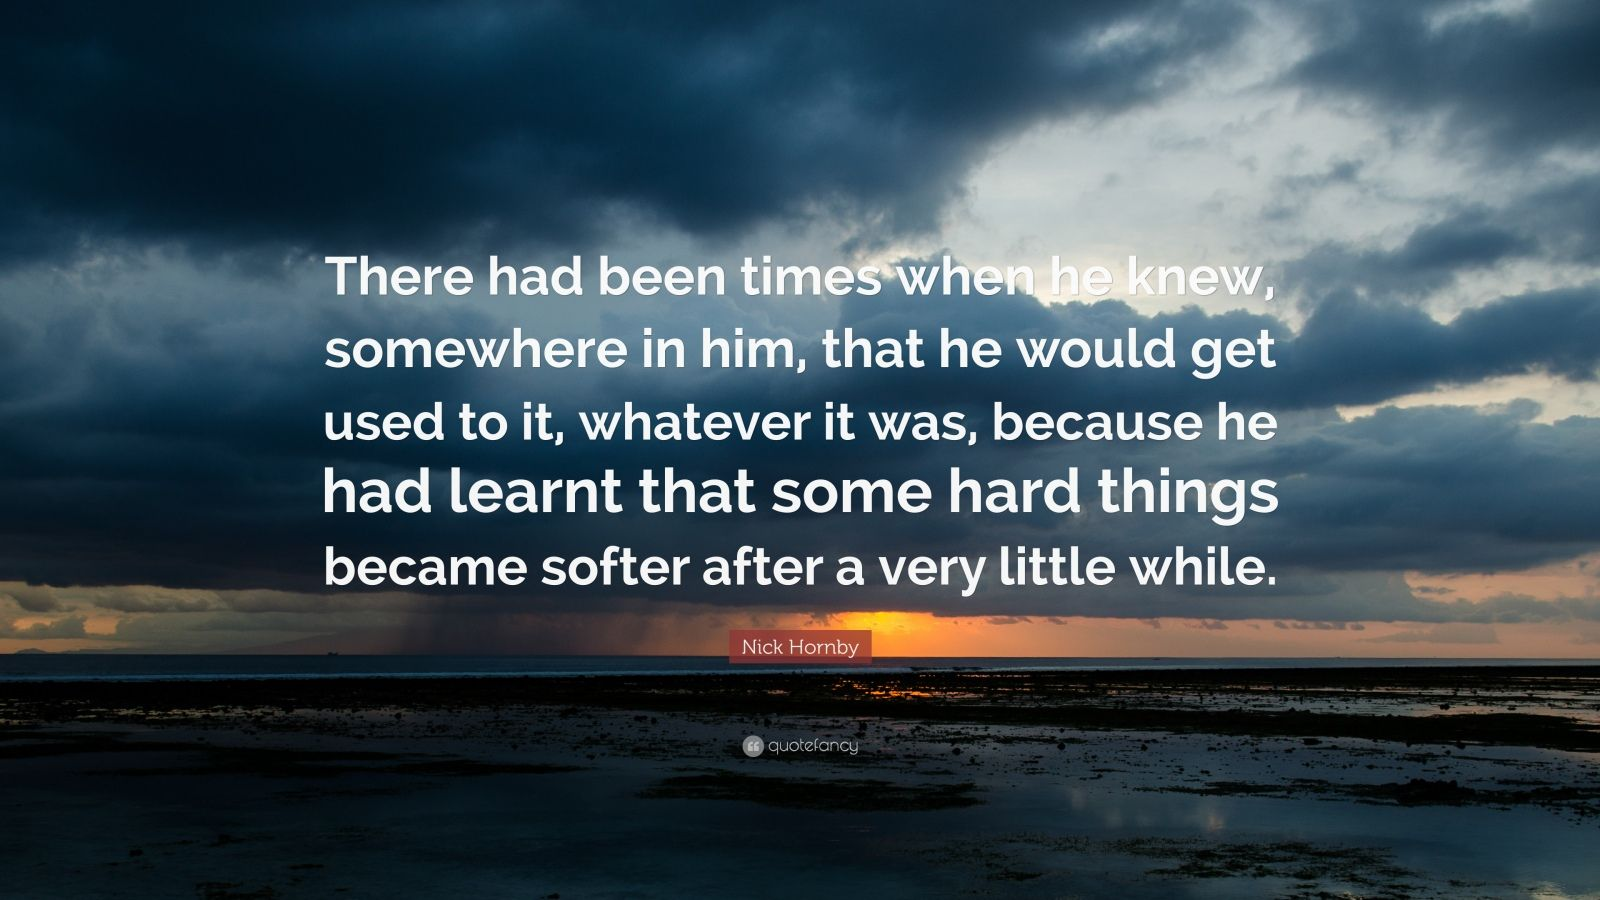 """Nick Hornby Quote: """"There had been times when he knew, somewhere in him, that he would get used to it, whatever it was, because he had learnt that some hard things became softer after a very little while."""""""